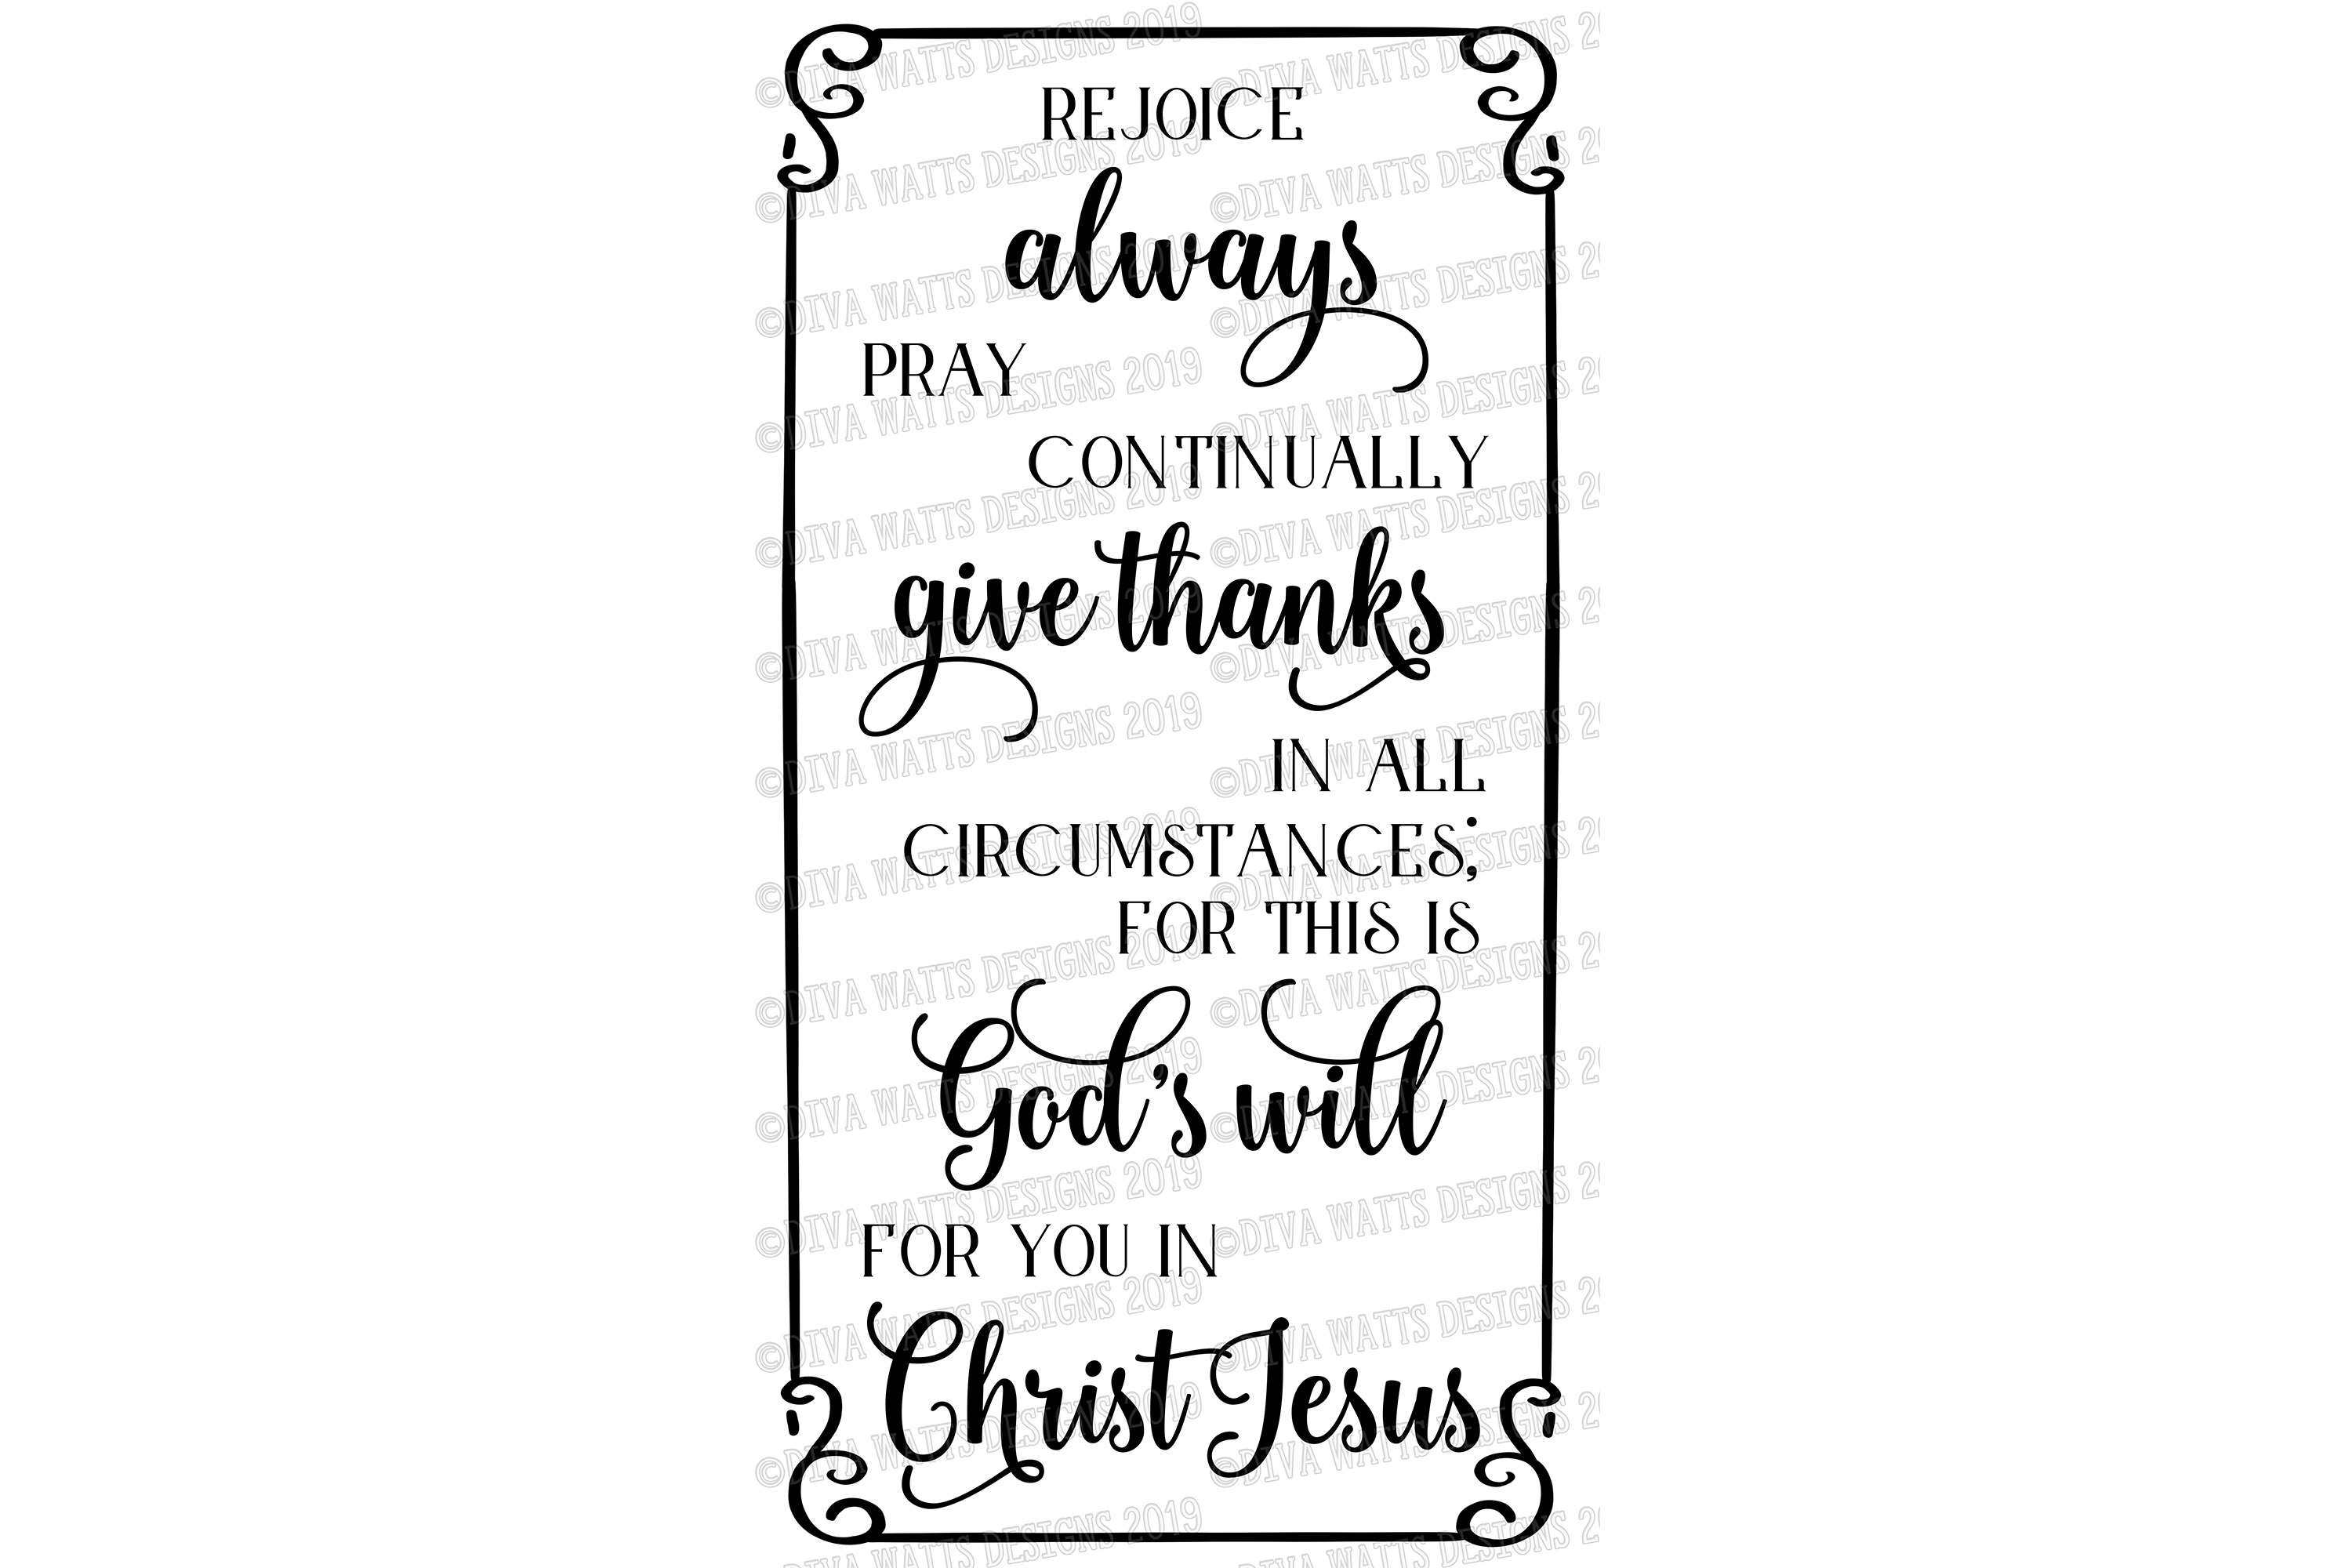 Rejoice Always Pray Continually Give Thanks God's Will Verse example image 3